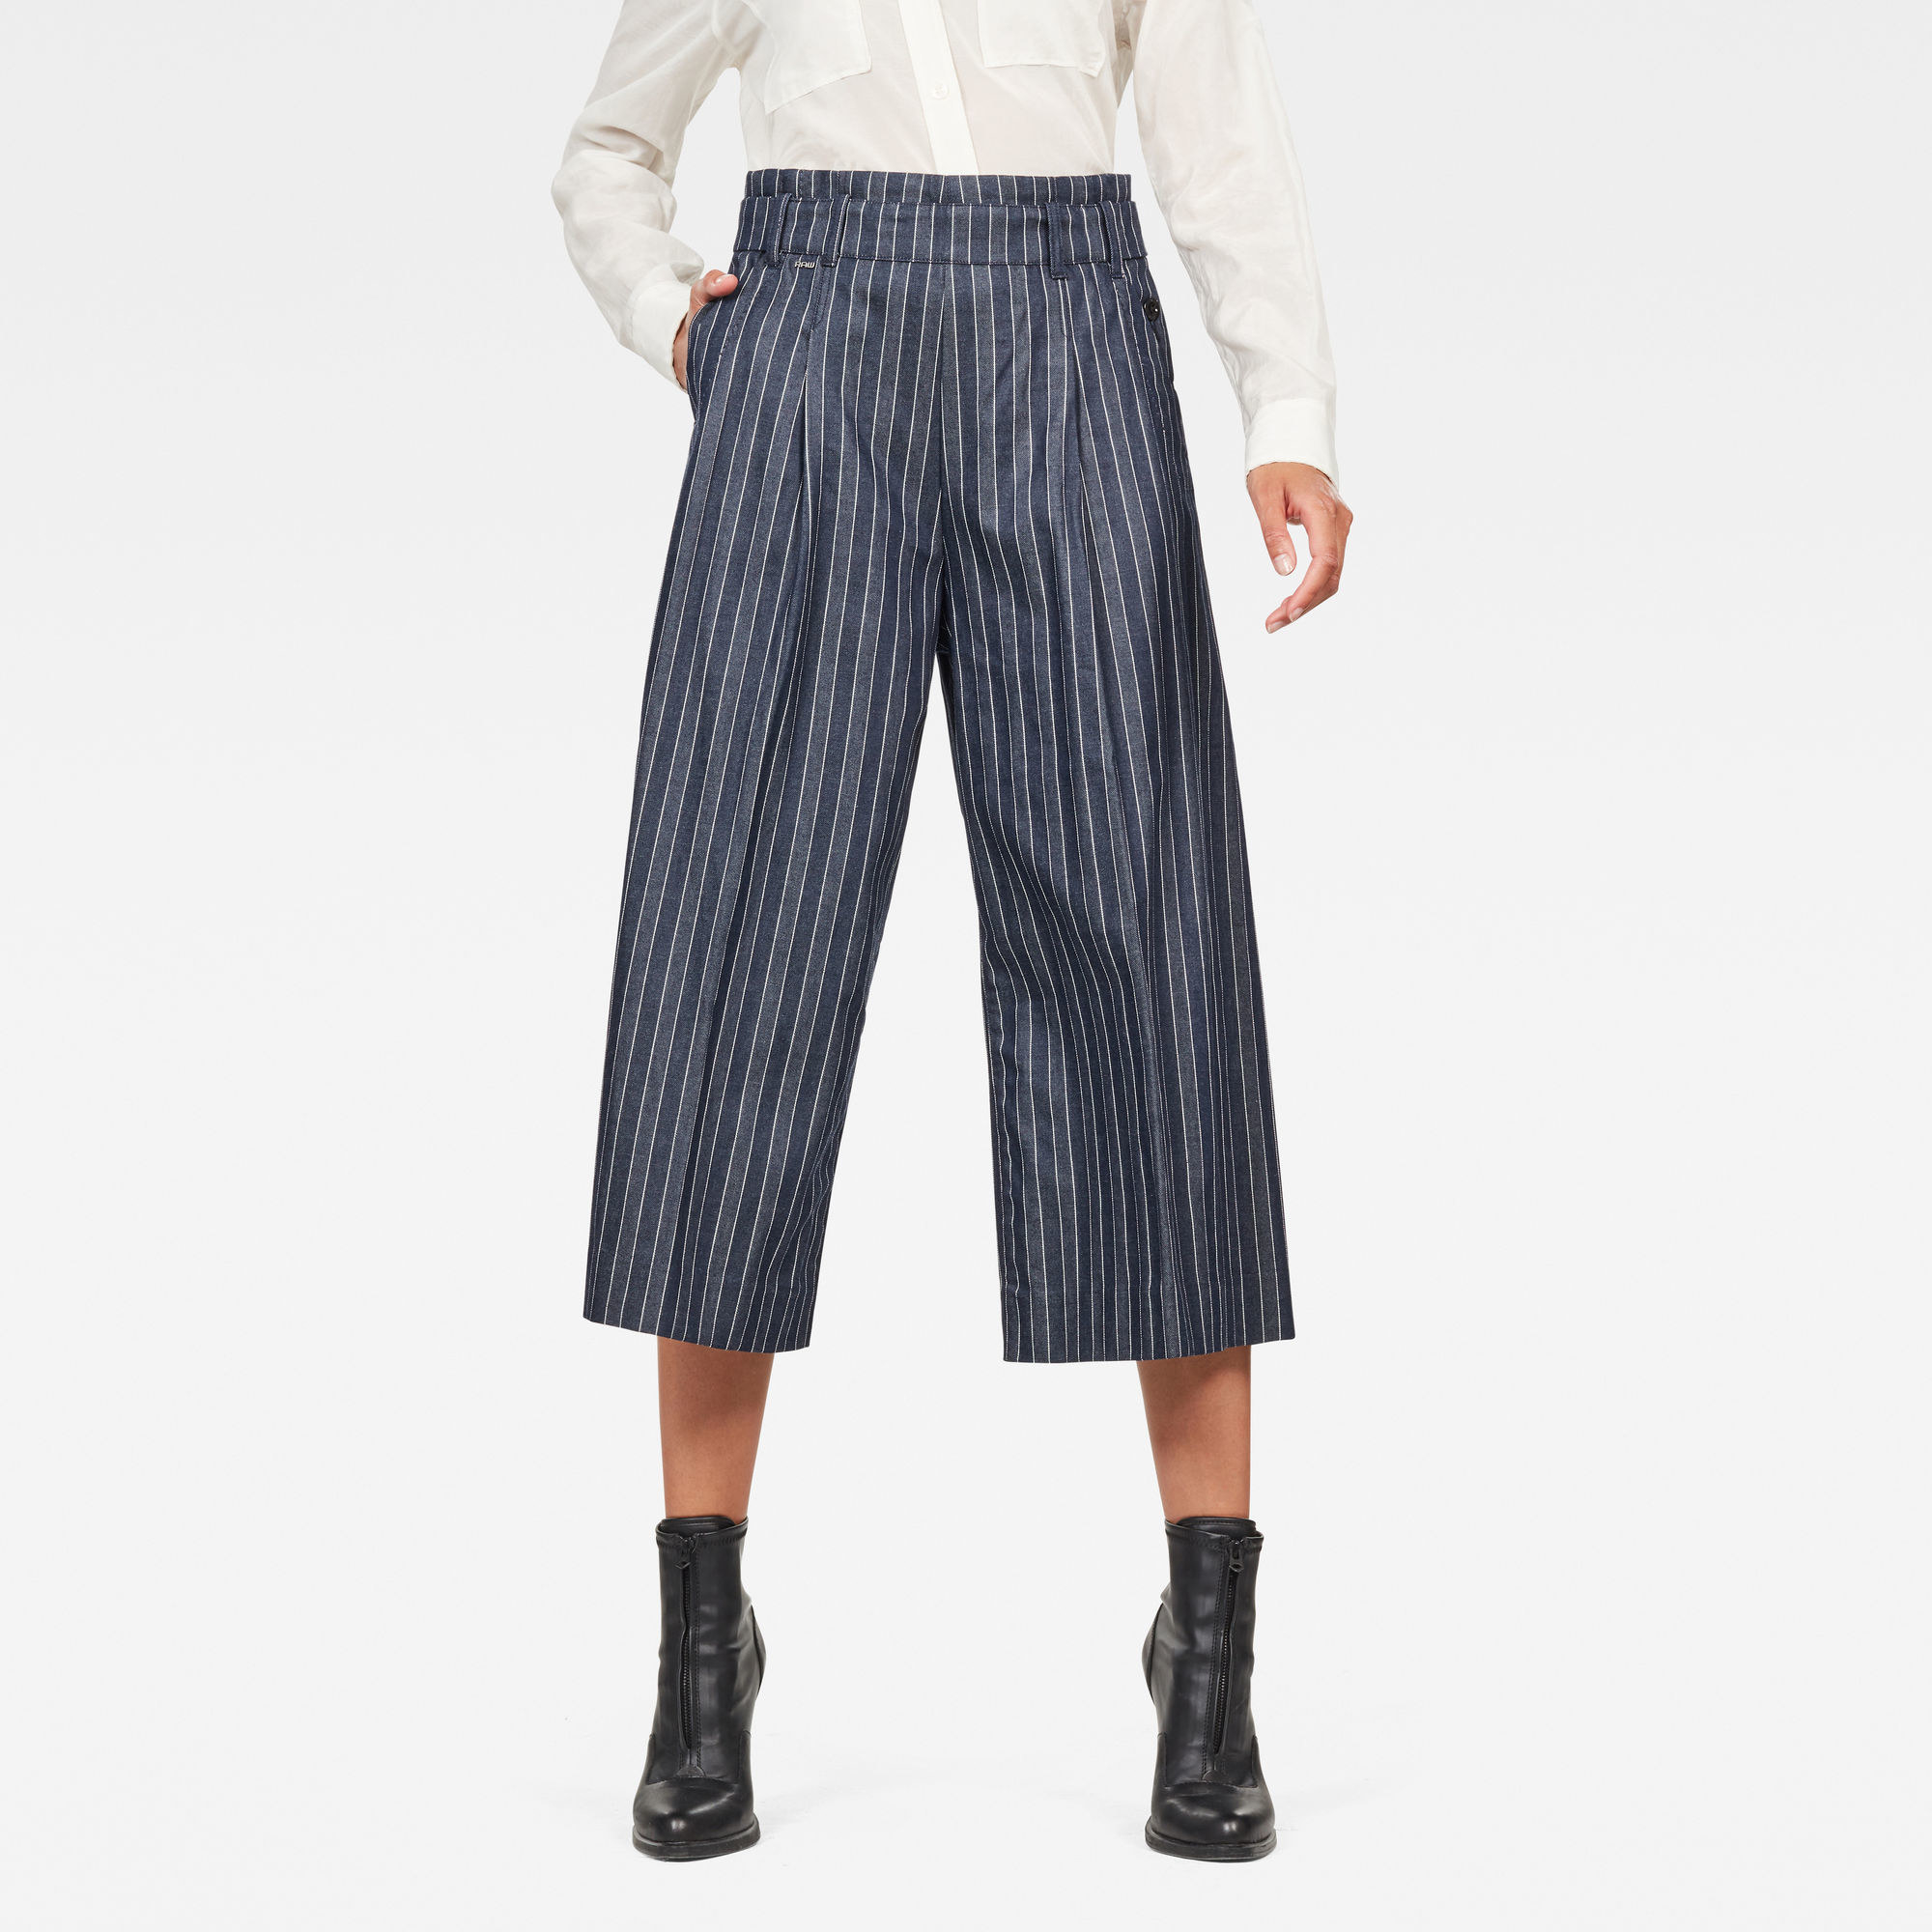 A model in the culottes